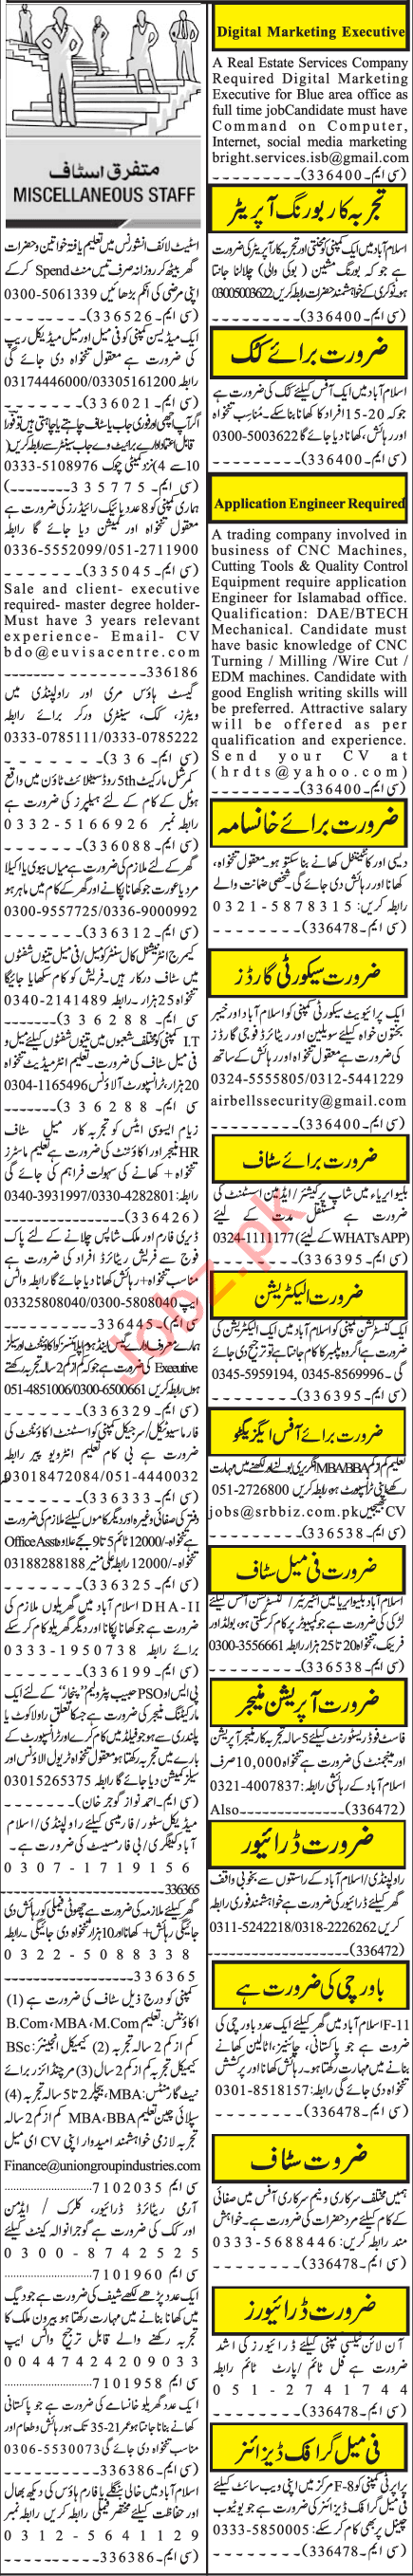 Jang Sunday Classified Ads 11 July 2021 for Office Staff